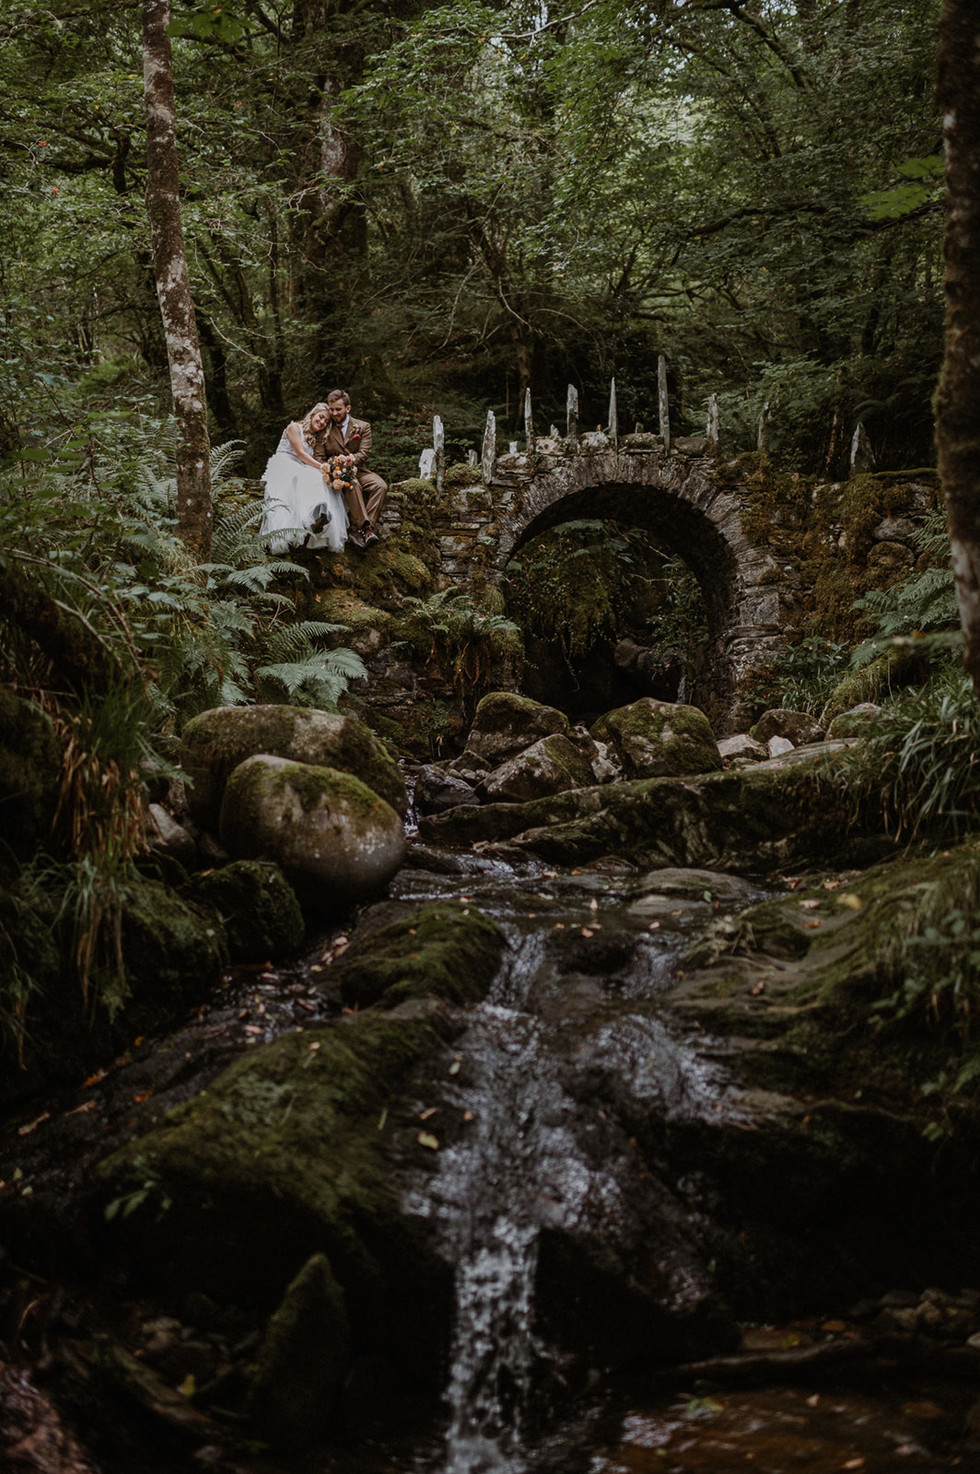 Bryony and Tom's elopement photo at The Fairy Bridge - Raini Rowell Photography